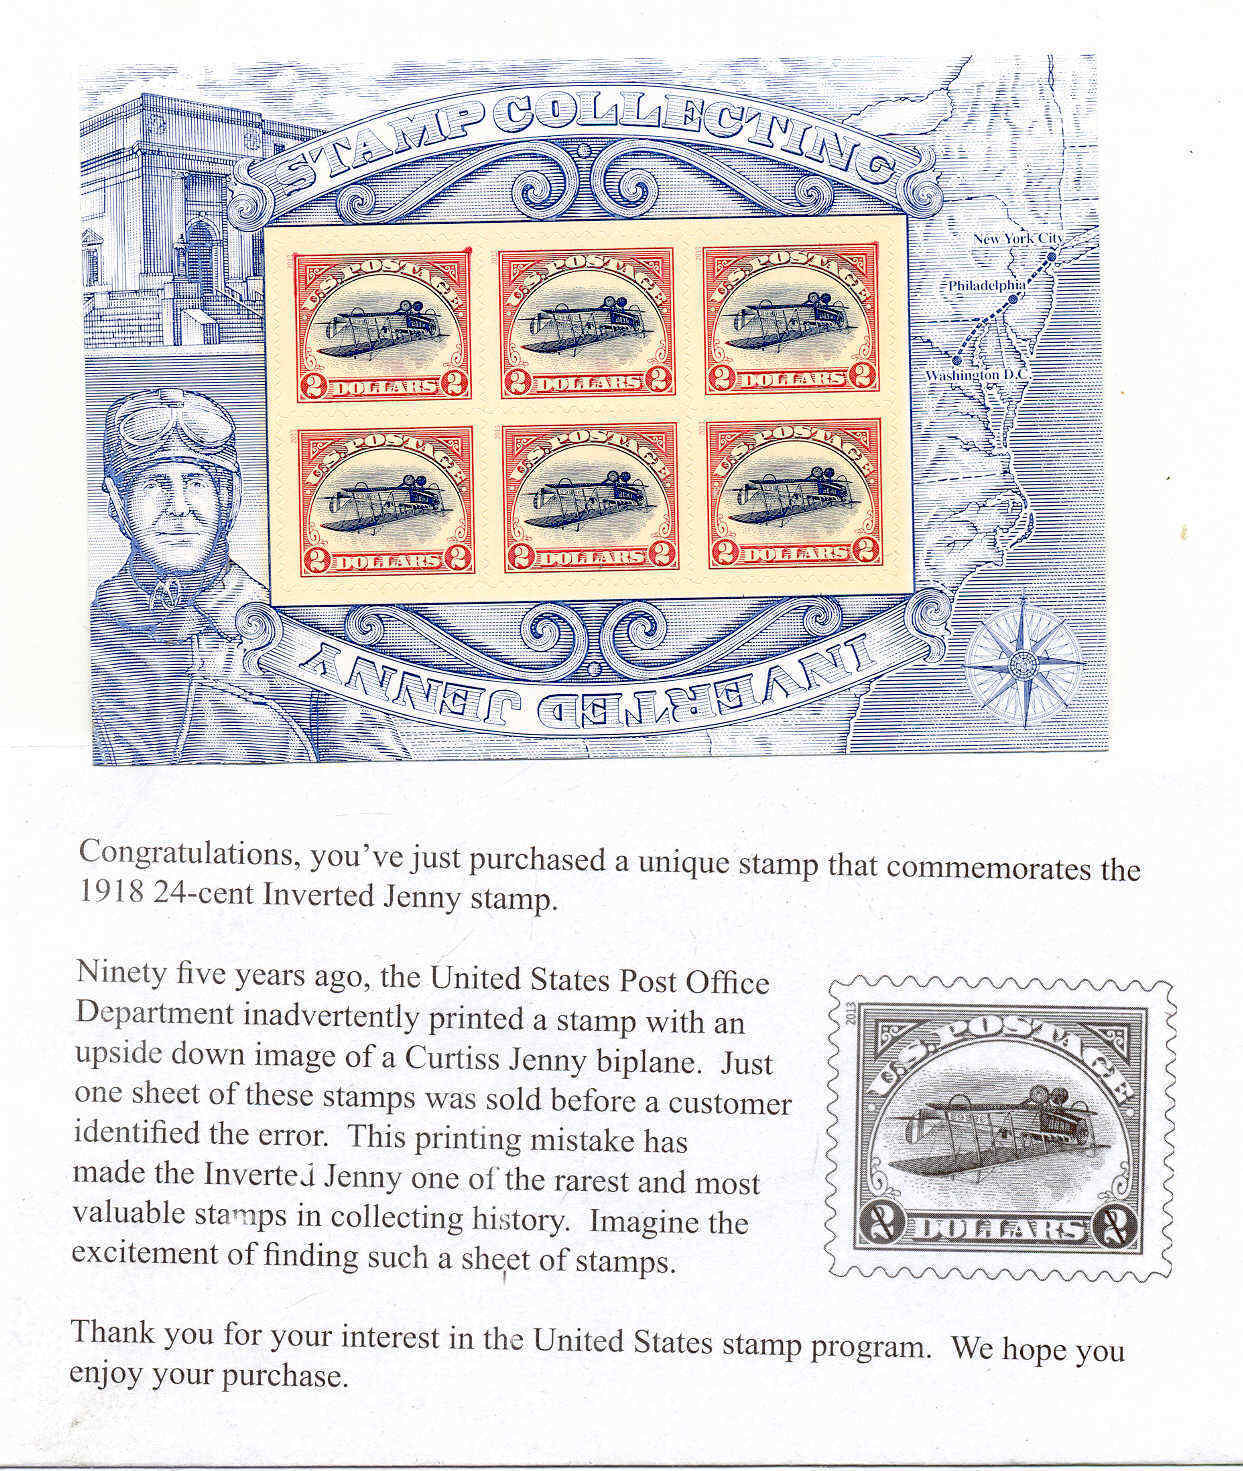 United States - Scott #4806 (2013) full souvenir sheet and descriptive card; image from active eBay auction [NIMC: 2018]